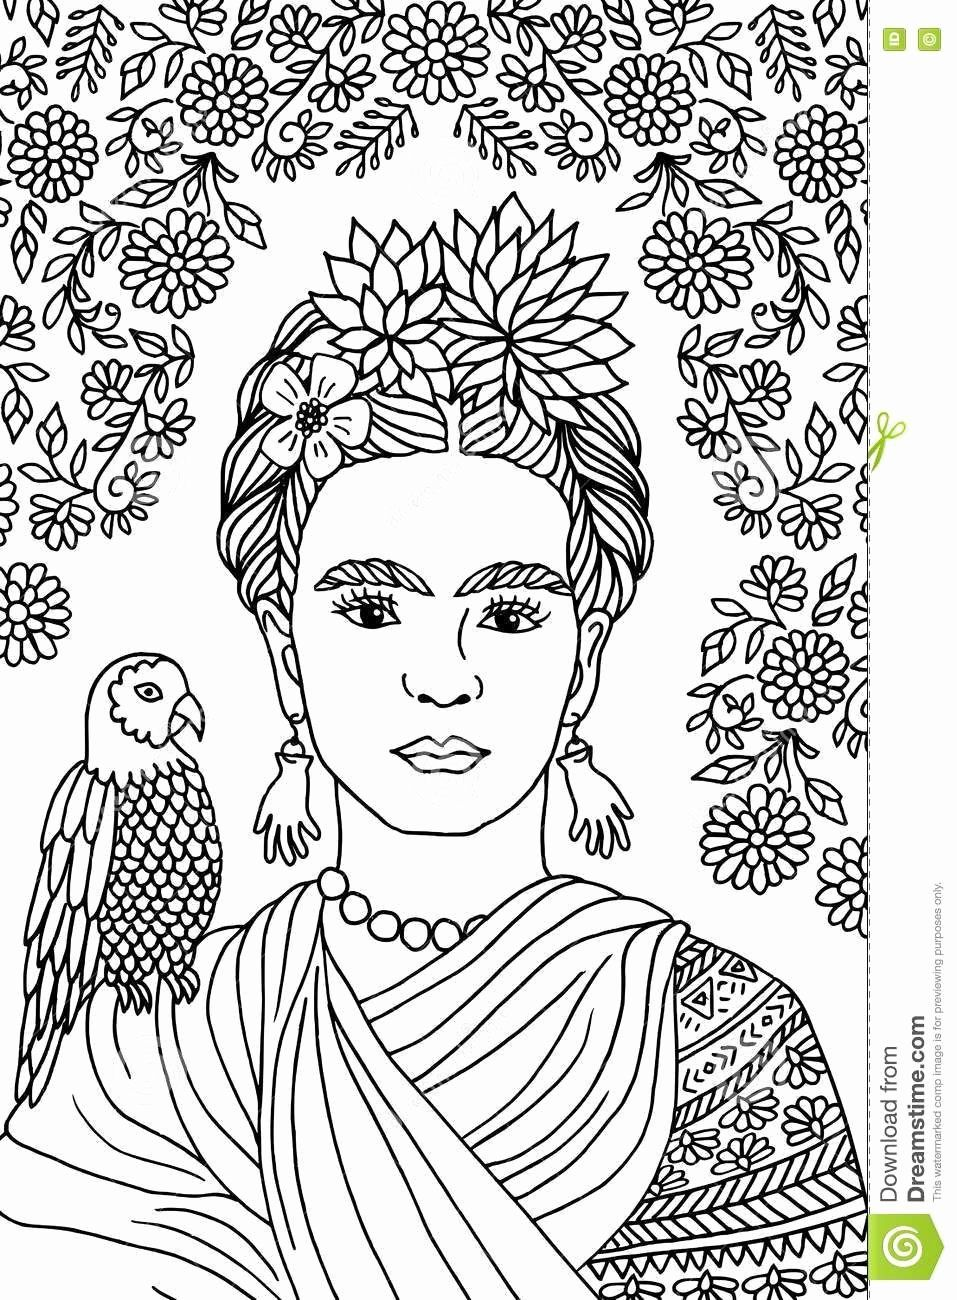 Frida Kahlo Coloring Pages : frida, kahlo, coloring, pages, Frida, Kahlo, Coloring, Luxury, Related, Image, Drawn, Portraits,, Hands,, Drawings